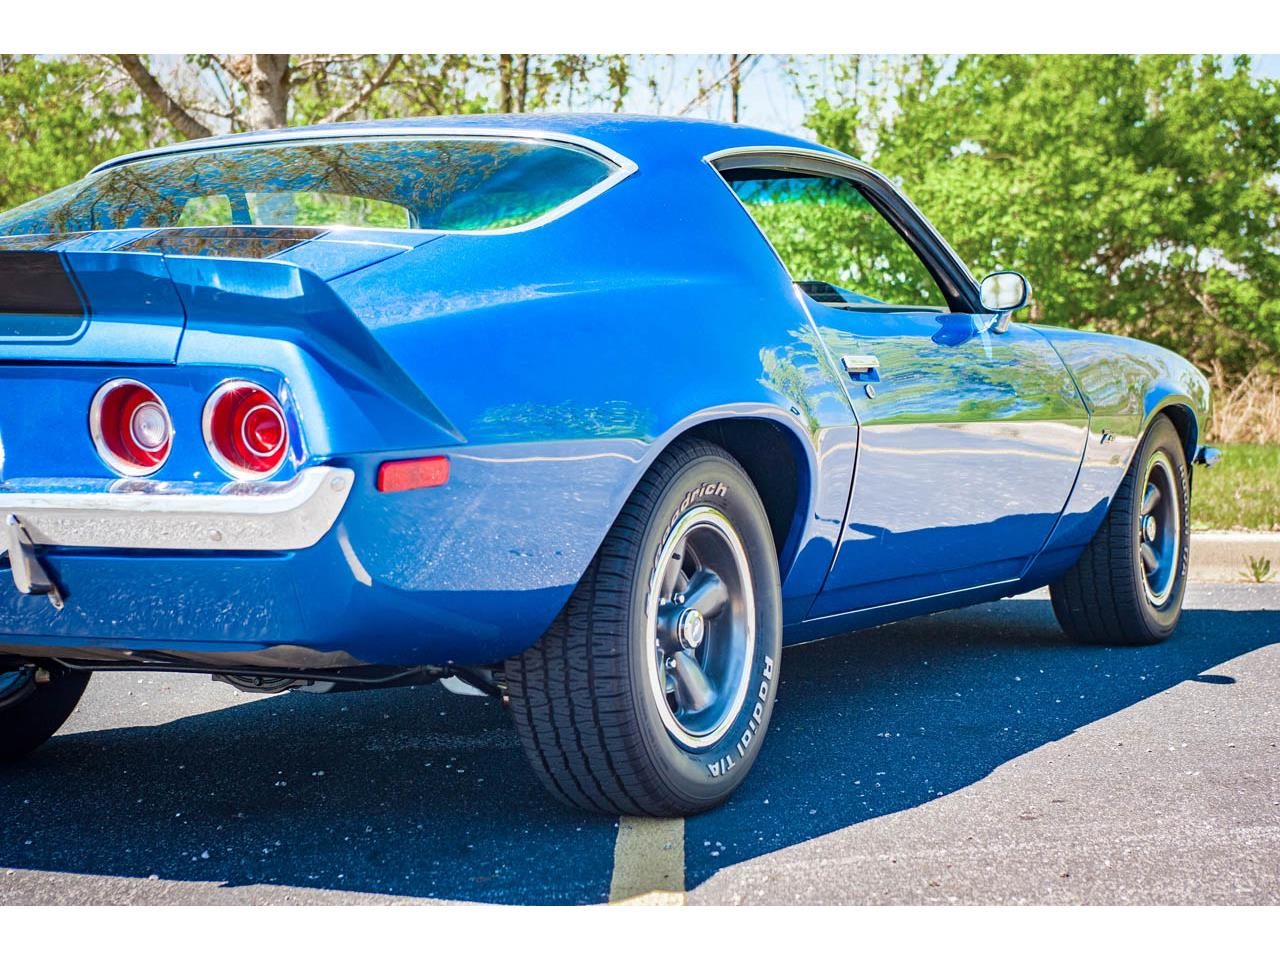 Large Picture of Classic 1971 Chevrolet Camaro located in Illinois Offered by Gateway Classic Cars - St. Louis - QB8S